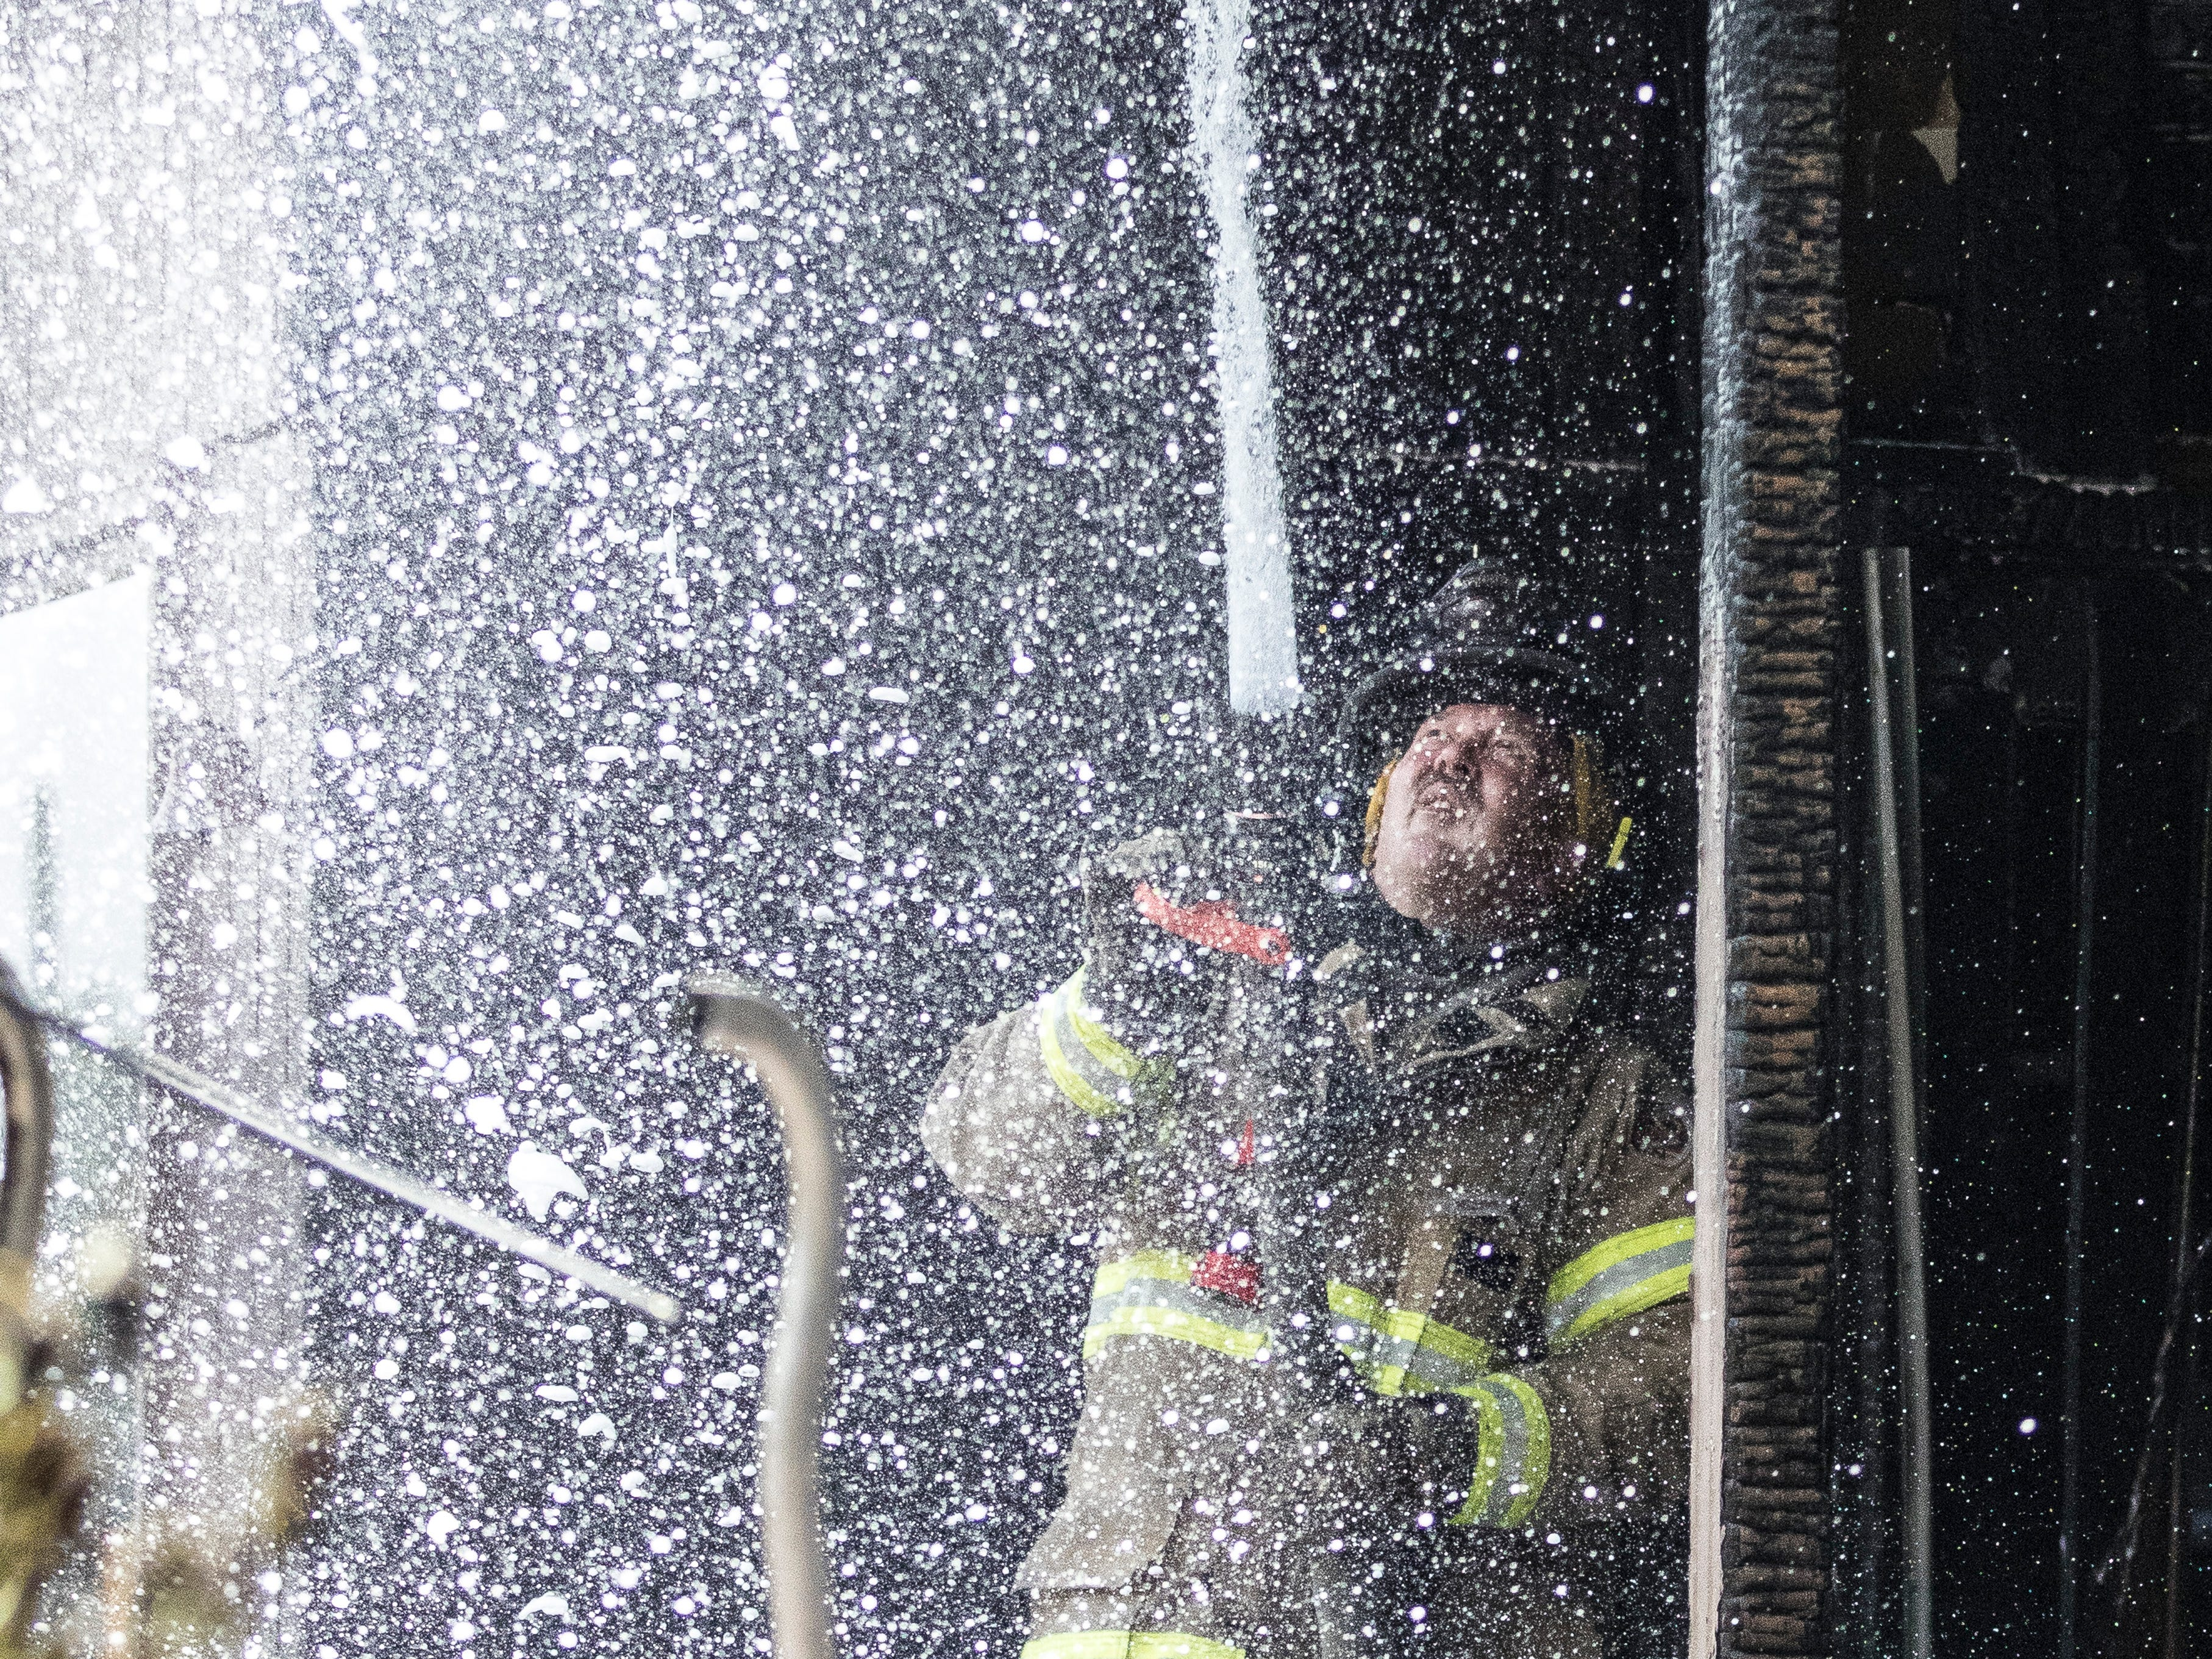 A Chillicothe firefighter hoses down the roof of a house on 47 Fruit Hill Drive to make sure all of the hot spots were taken care of Thursday afternoon.